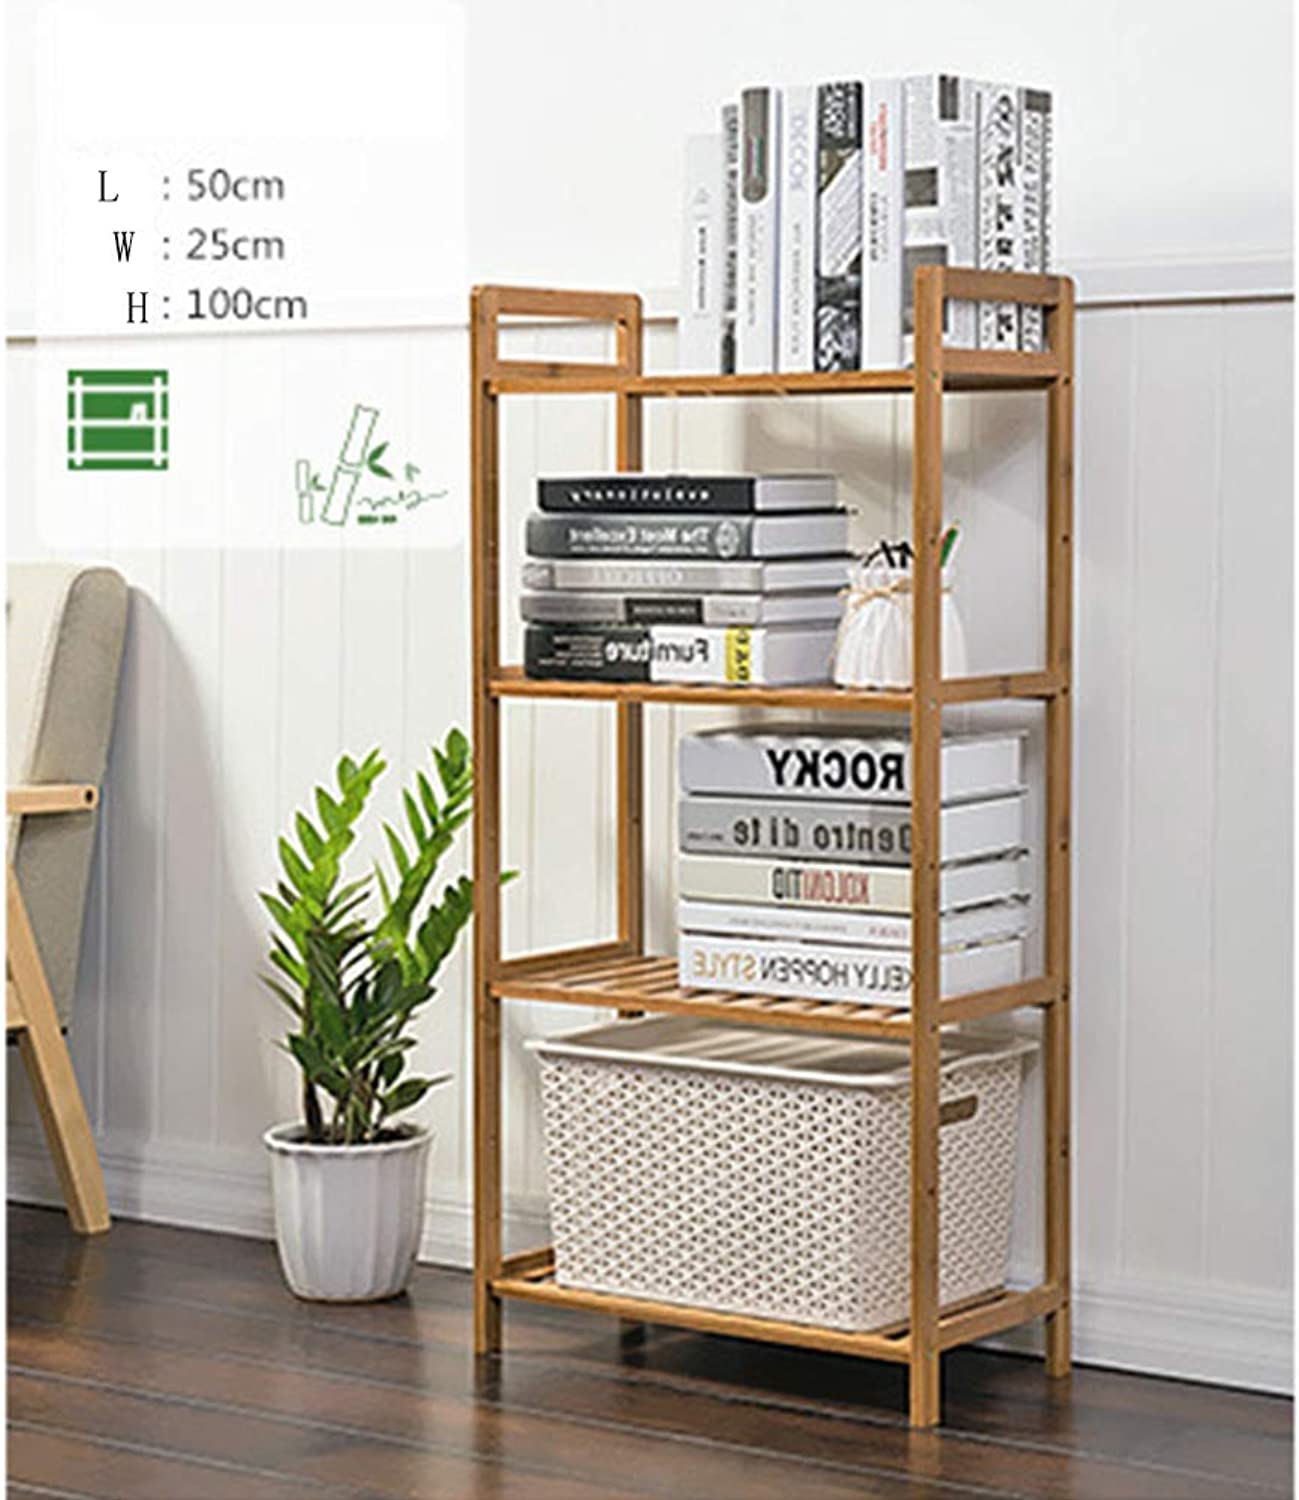 4 Tiers Detachable Natural Bamboo Simple Bookshelf Modern Cabinet Storage Rack Student Bookcase Rack Self Assembly,50Cm